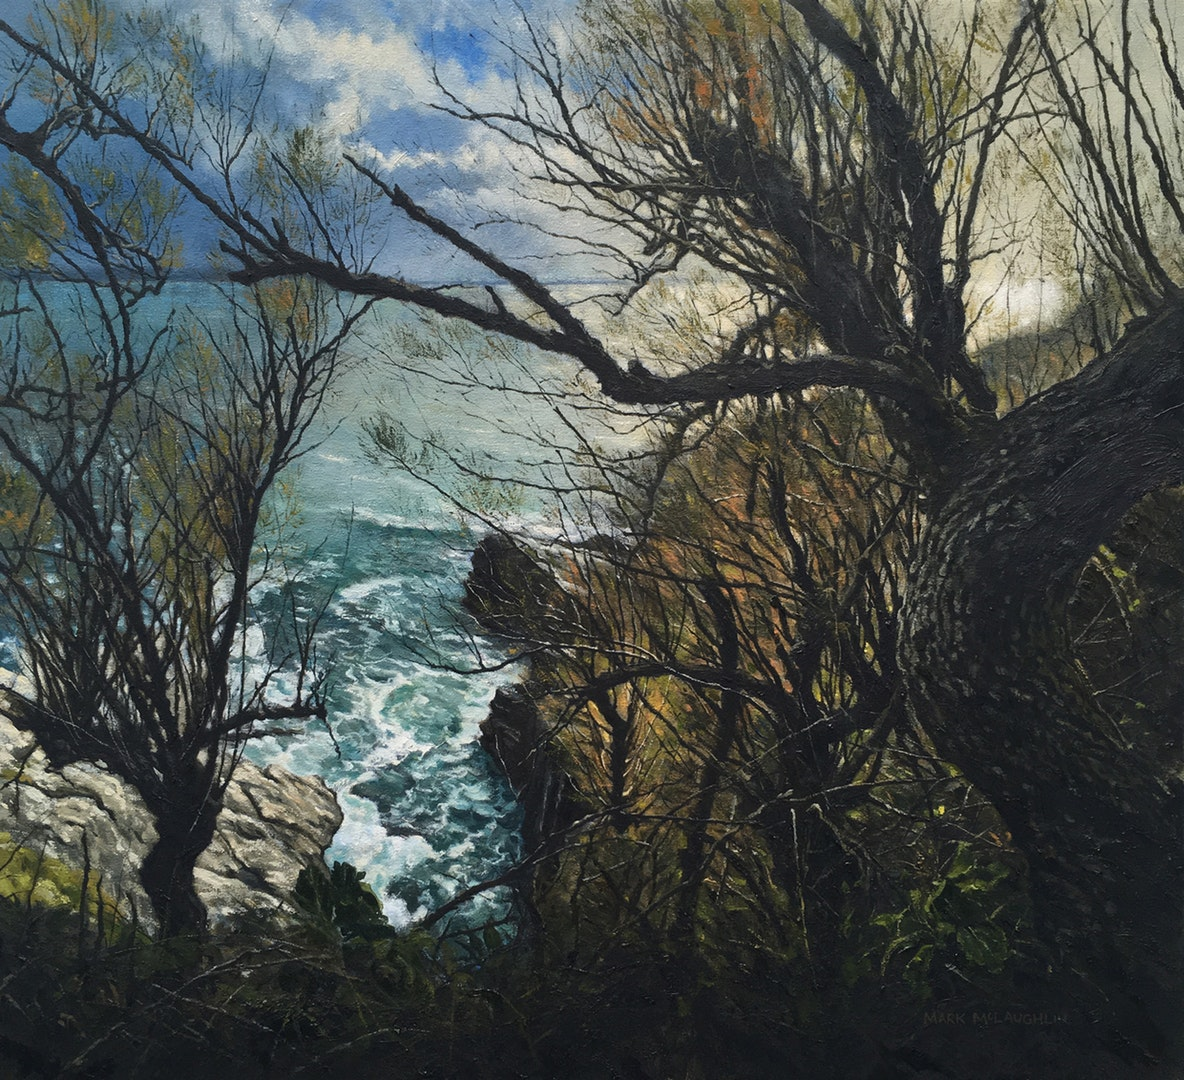 'Prussia Cove, Cornwall', Mark McLaughlin, Oil on canvas, 56 x 61 cm